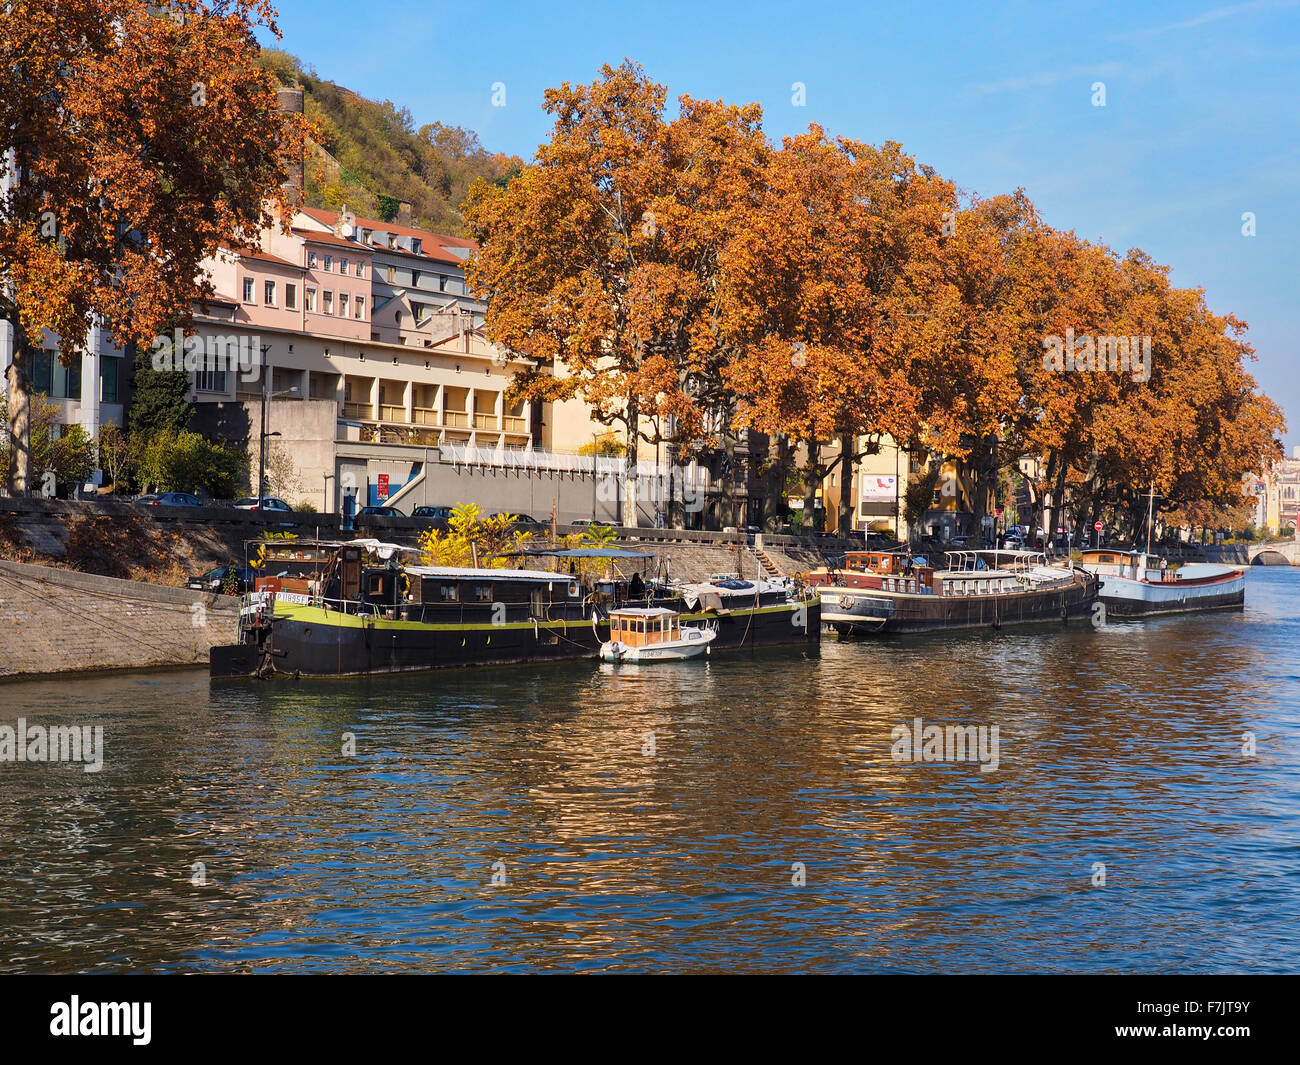 Modern and historic architecture on banks of River Soane, Lyon France - Stock Image